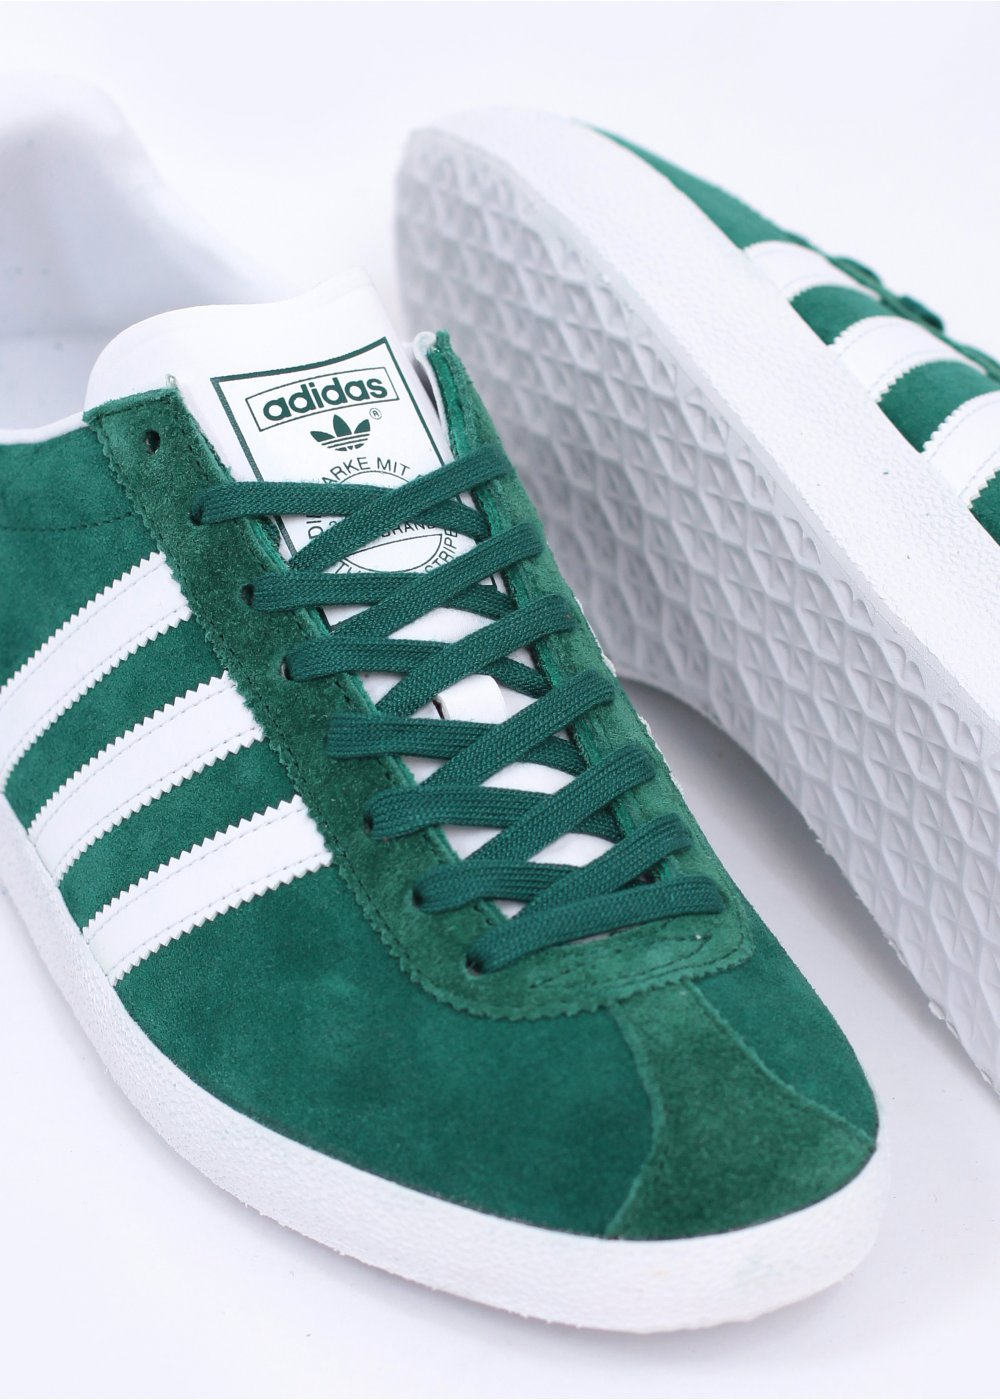 adidas gazelle green white